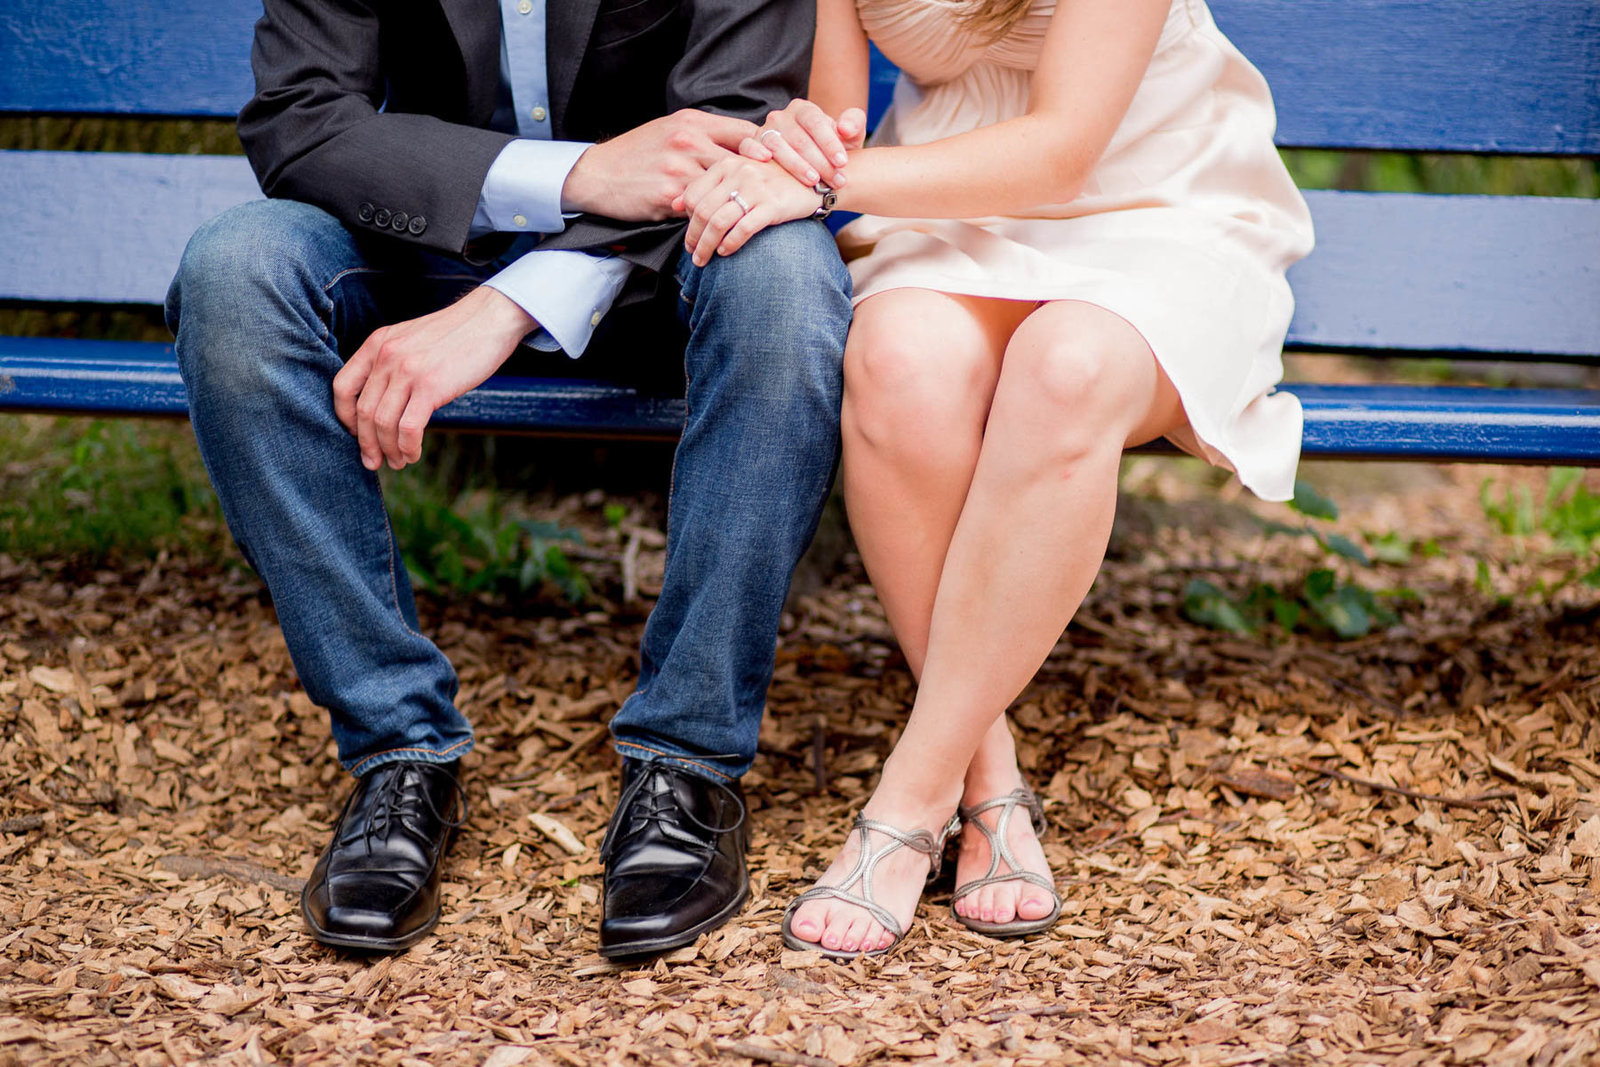 Engaged couple hold hands, Boathouse Row, Kelly Drive, Philadelphia, Pennsylvania